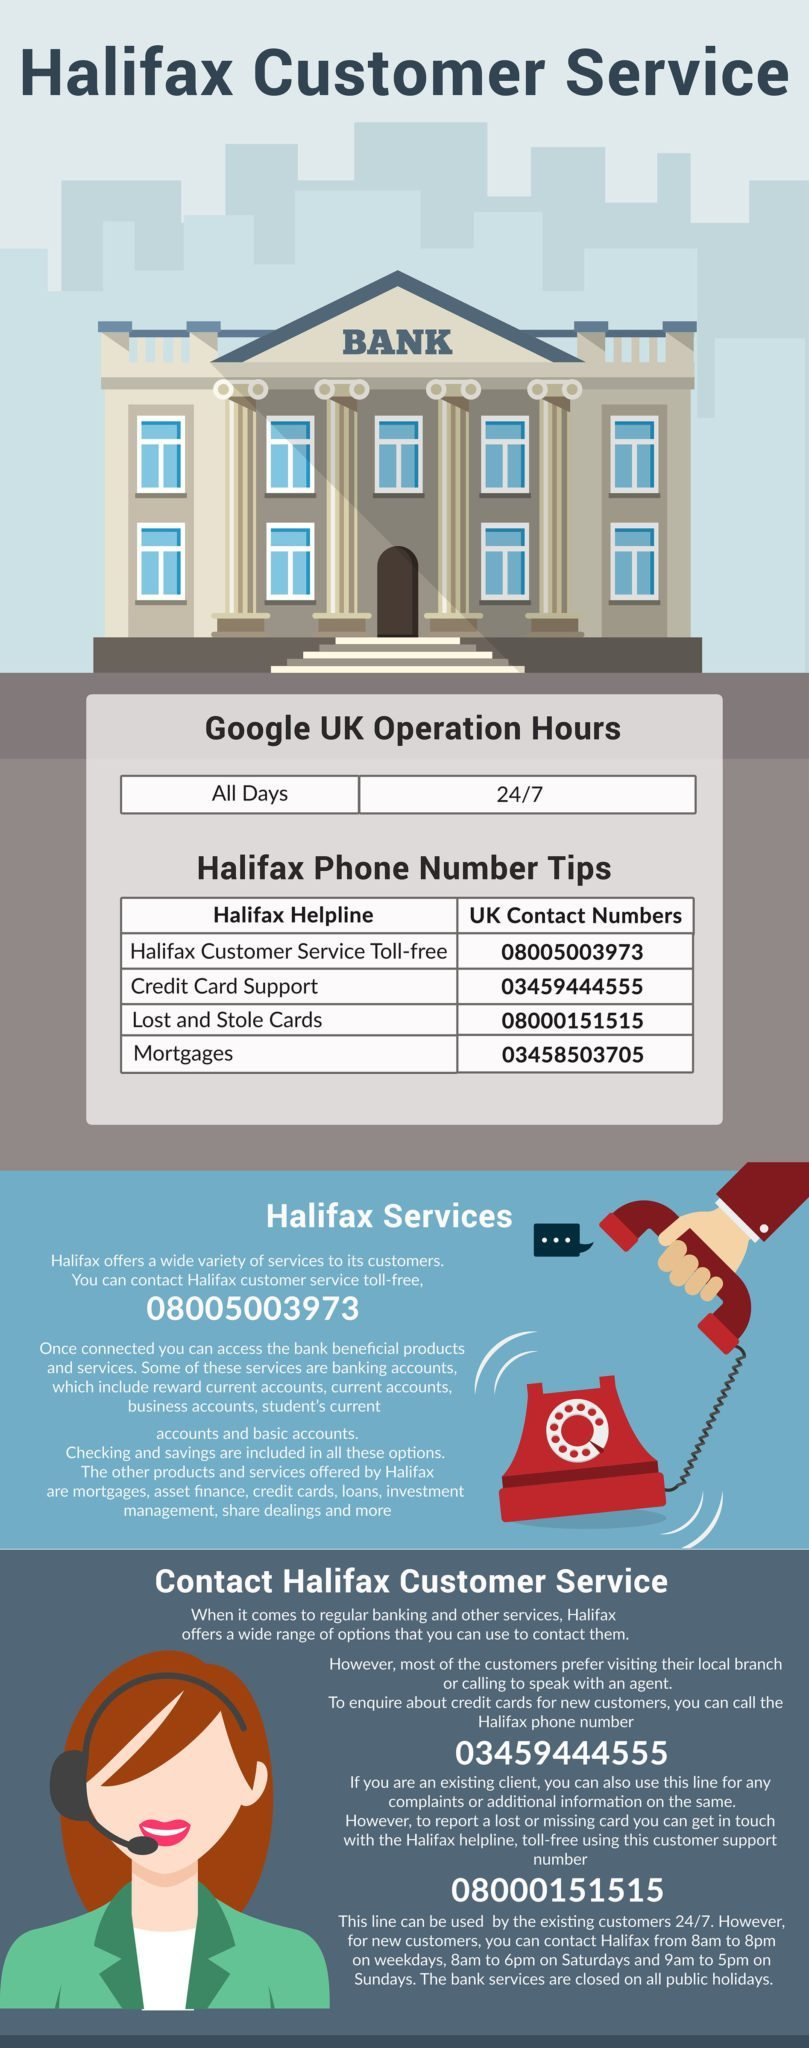 Halifax customer service numbers